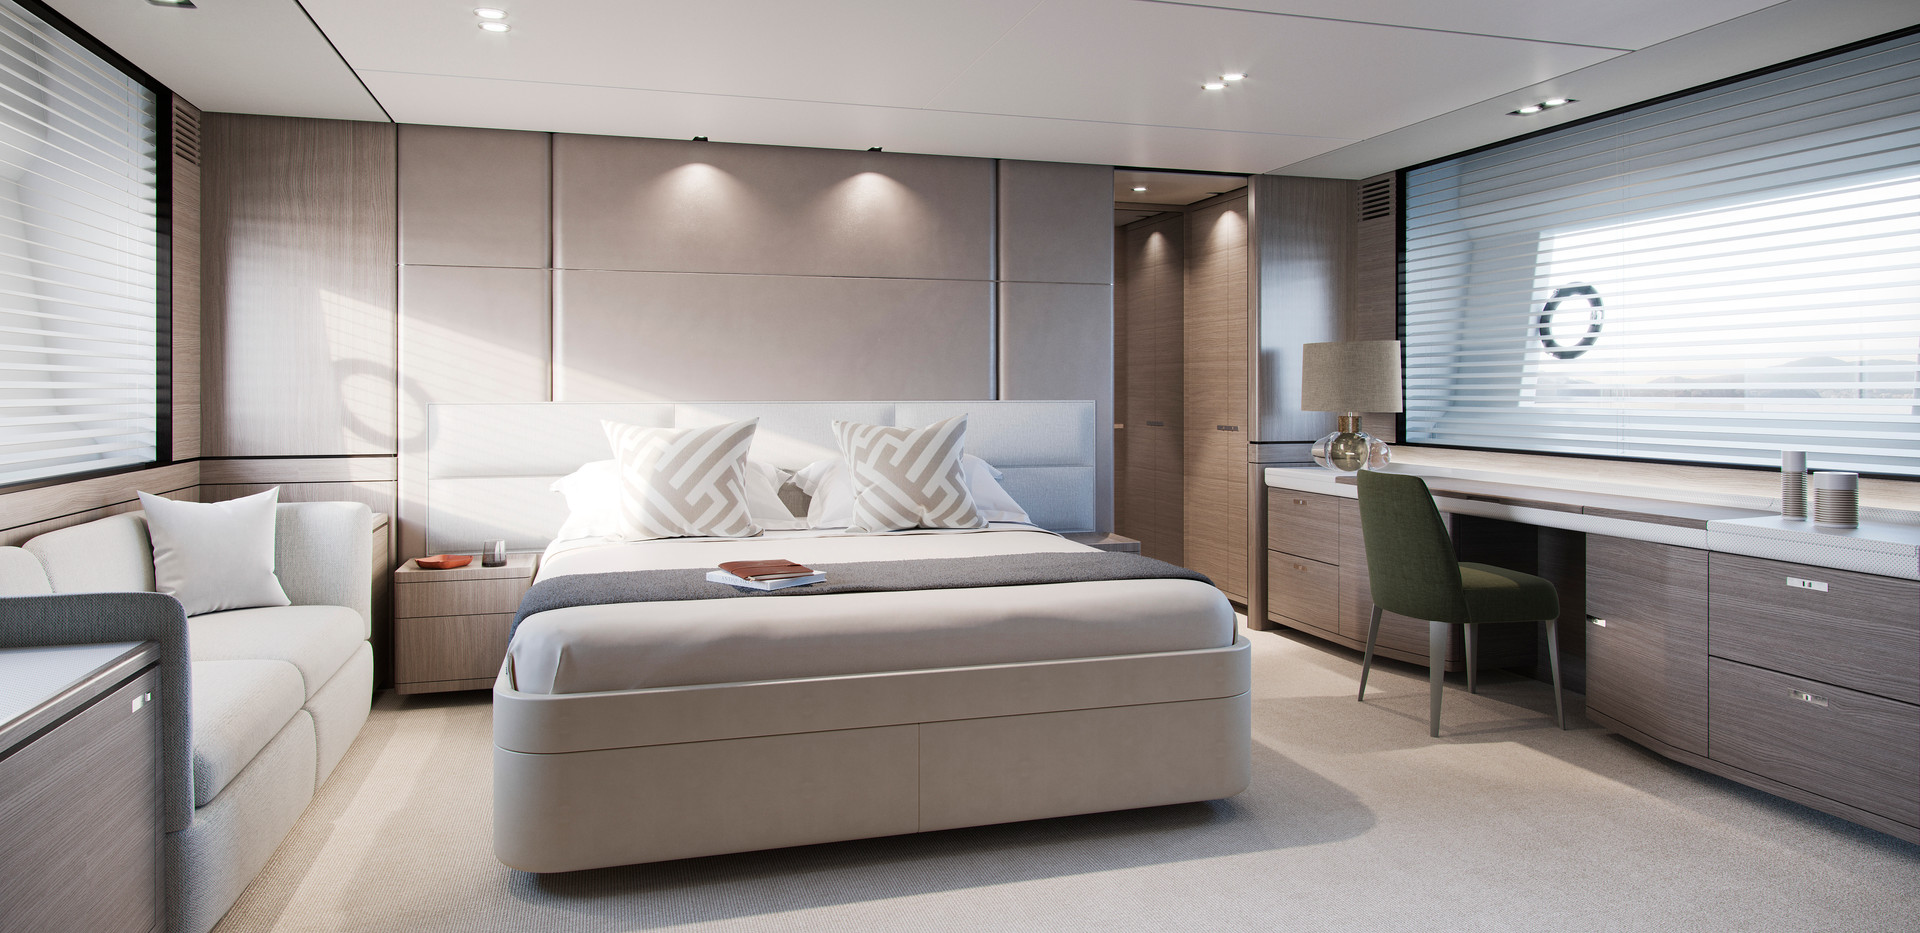 y78-interior-owners-stateroom-cgi-silver